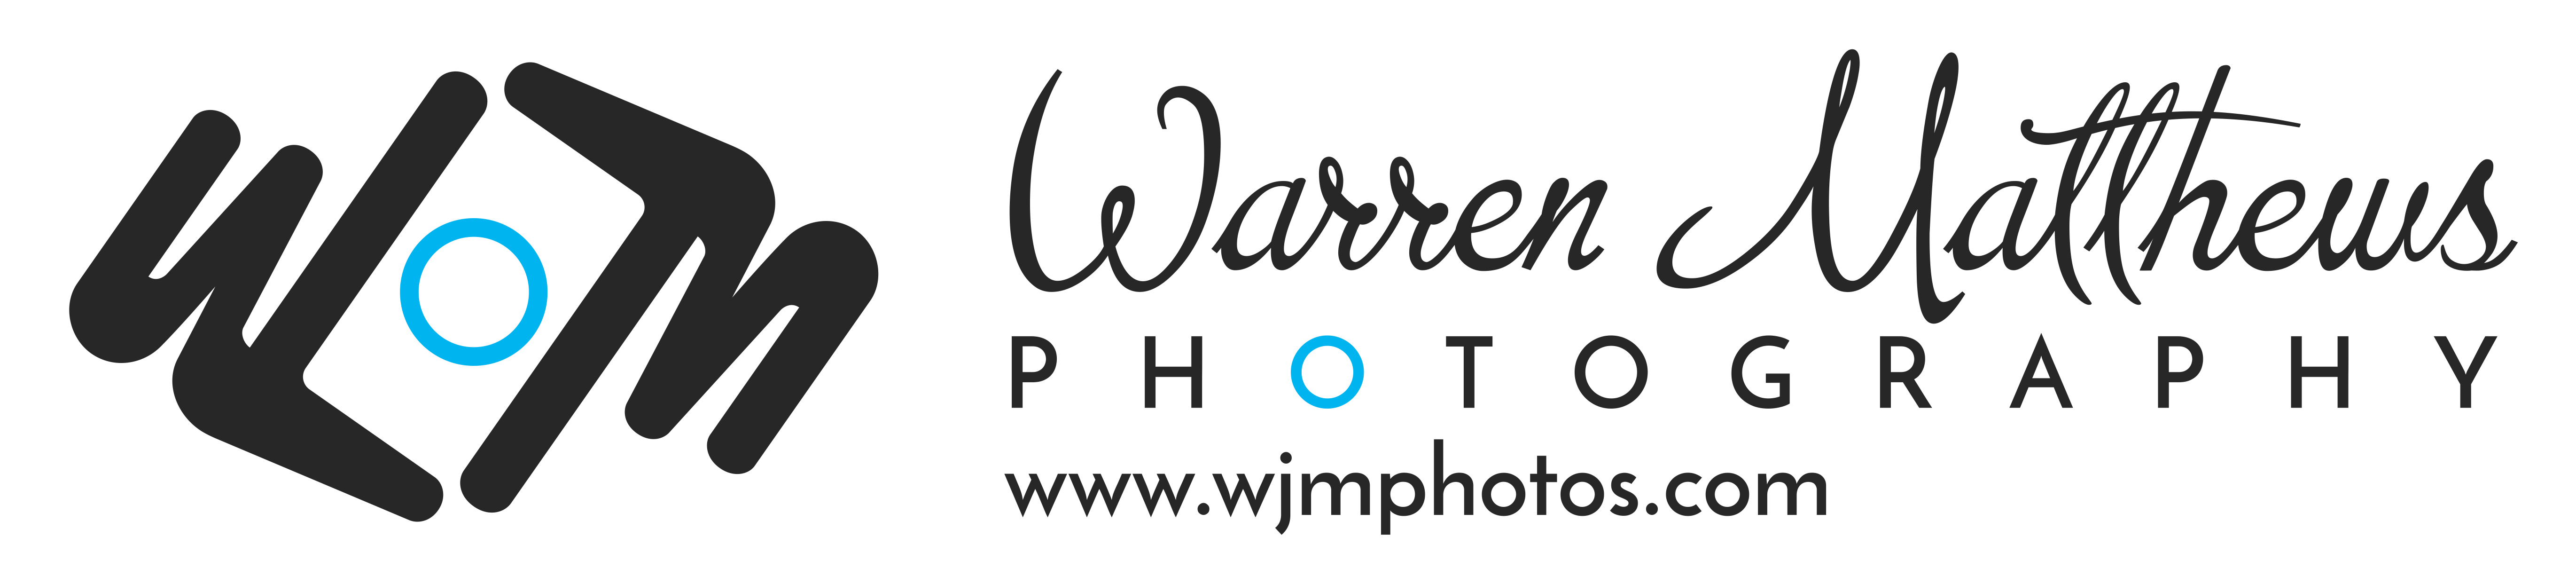 Warren Matthews Photography